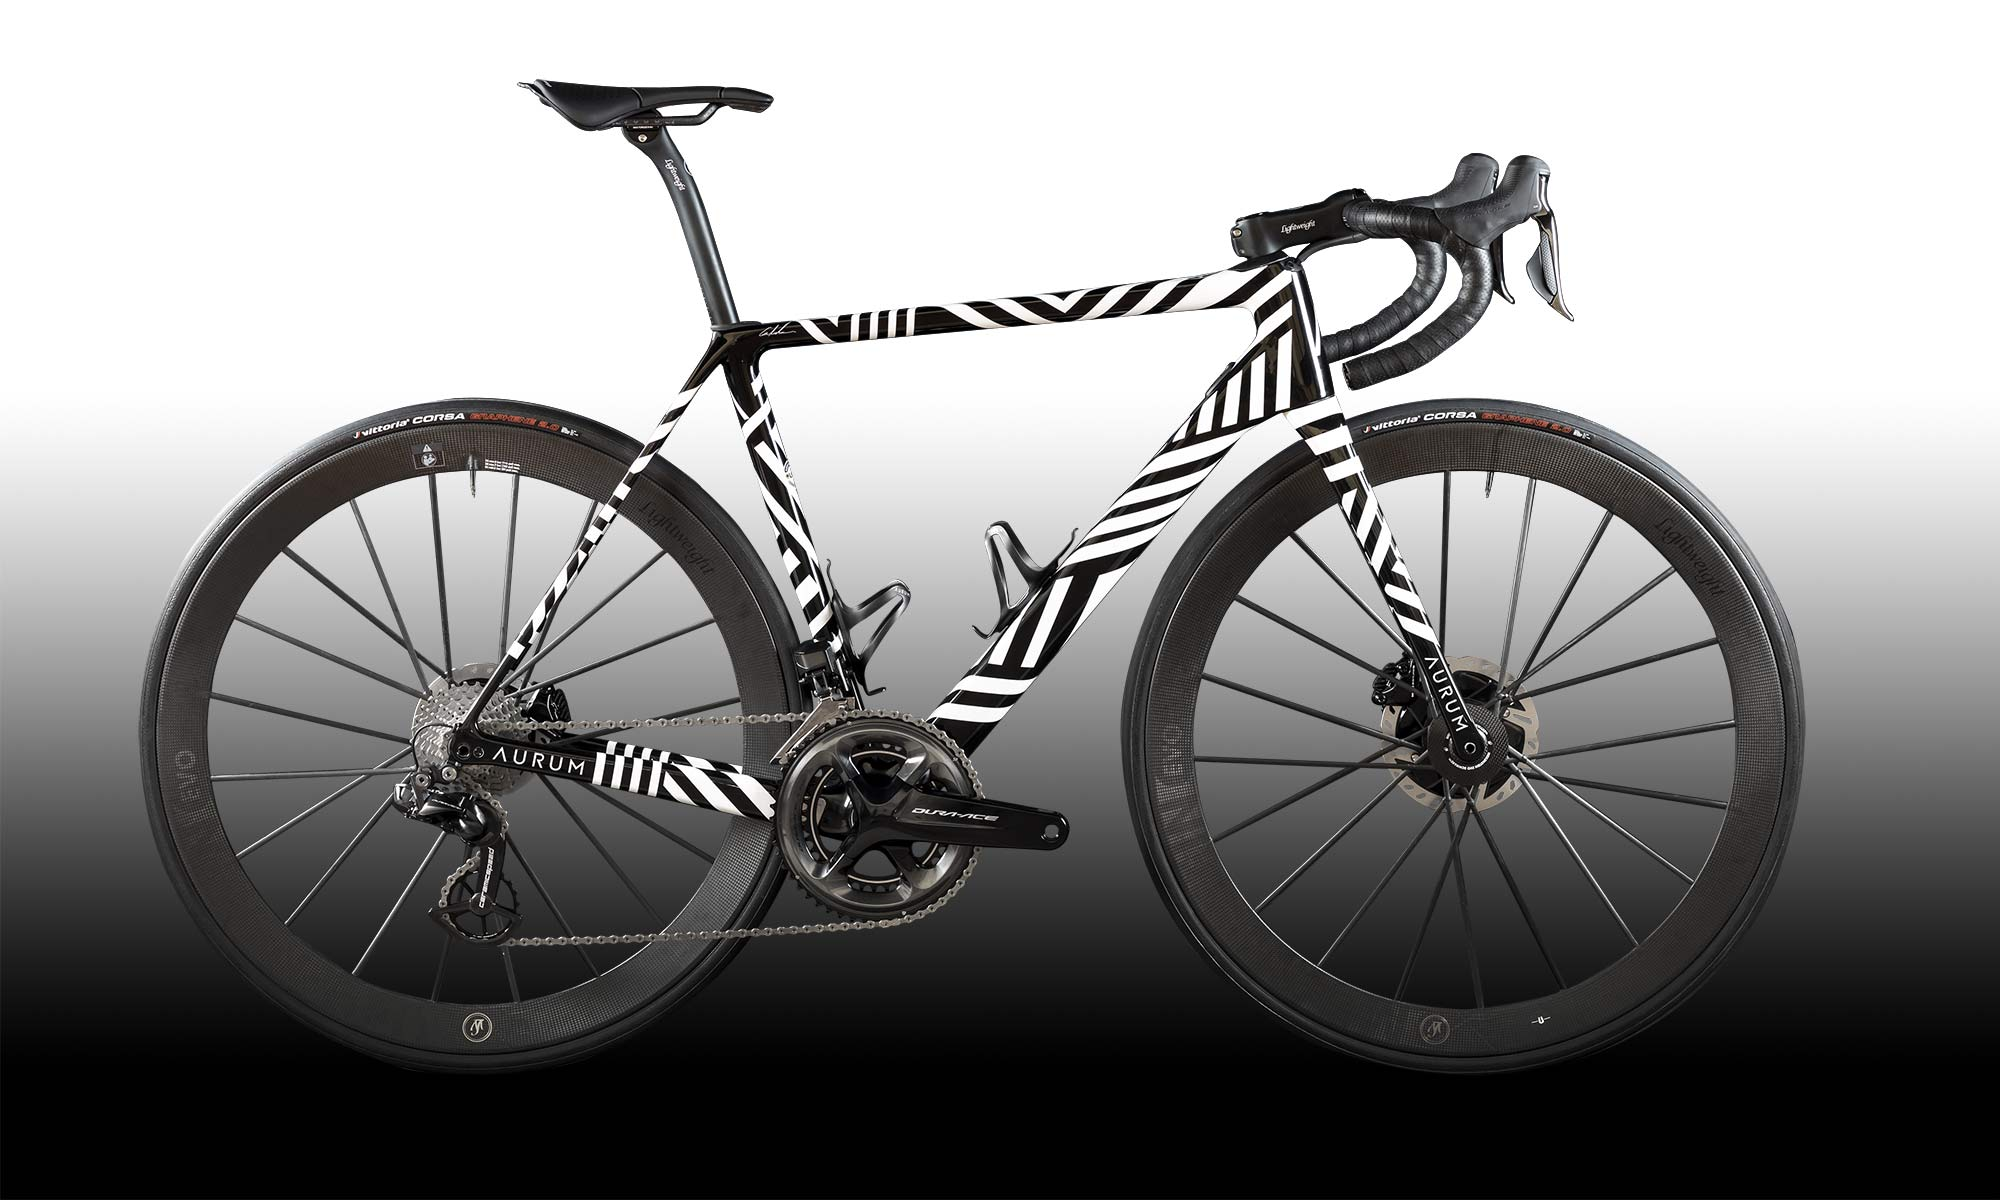 Aurum Zevra ultra-limited edition premium lightweight carbon Magma disc brake road bike by Basso & Contador, 1 of 21